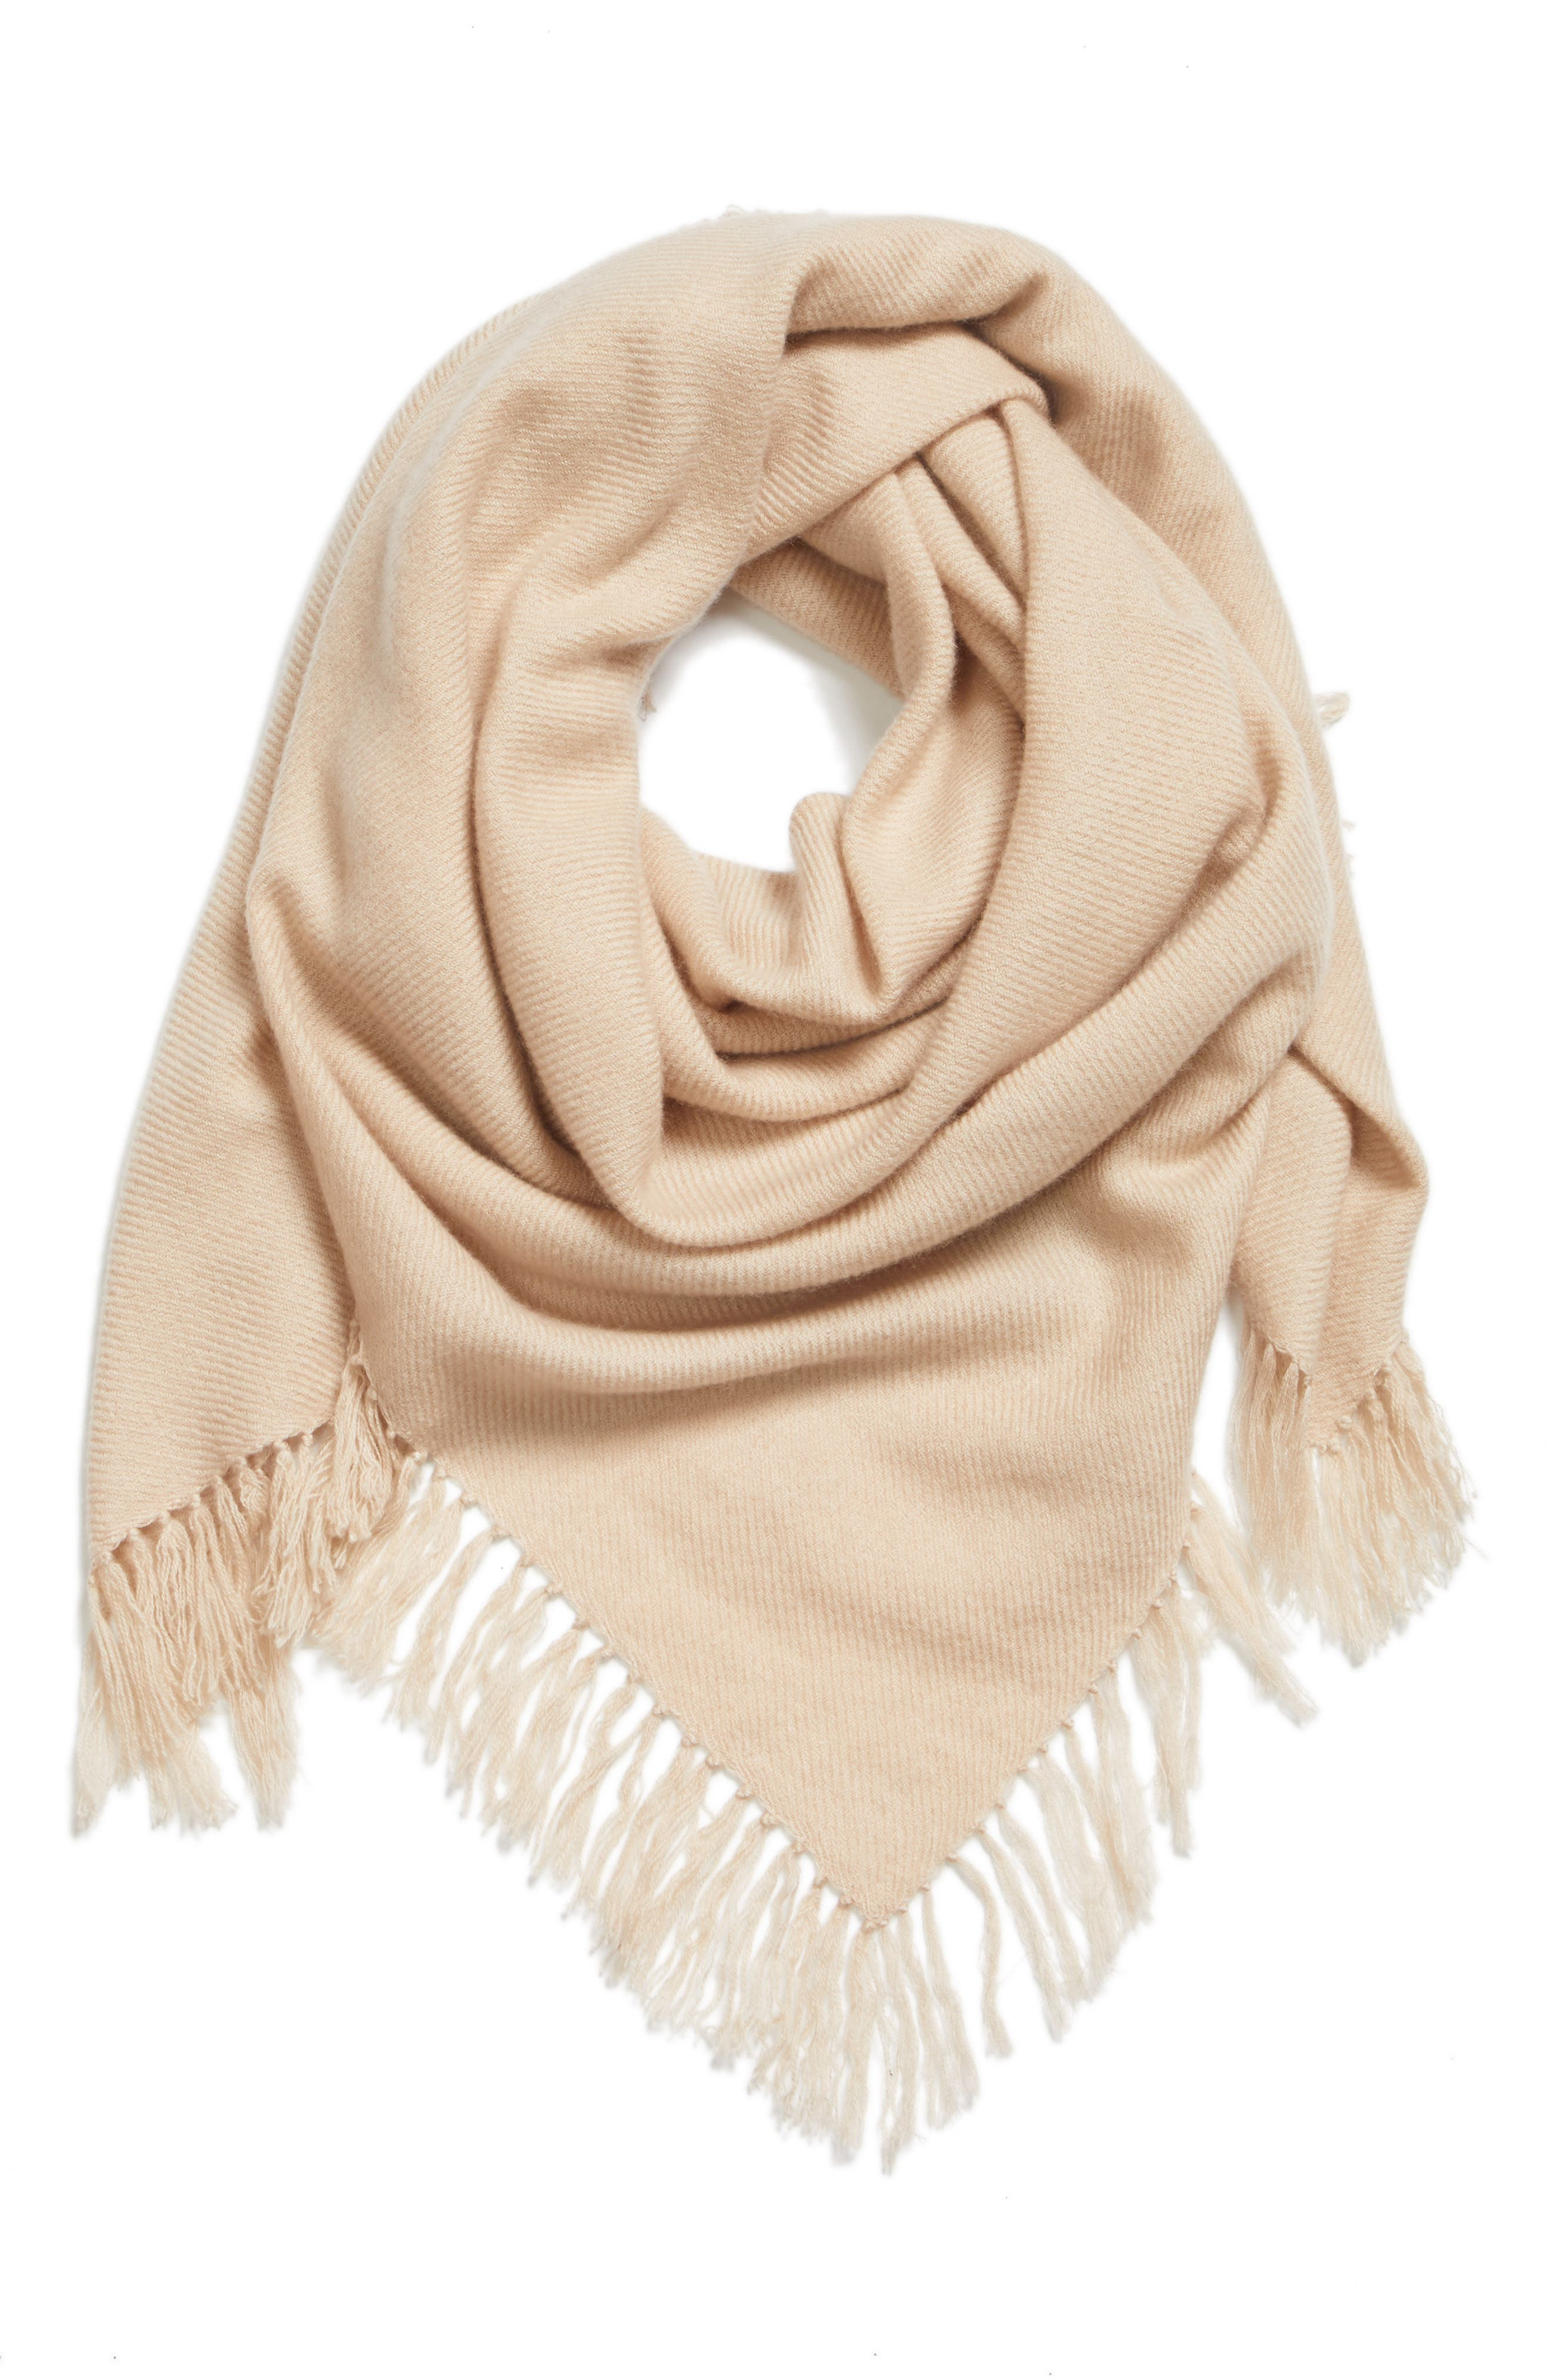 Zila Cashmere & Wool Scarf,                             Alternate thumbnail 3, color,                             900